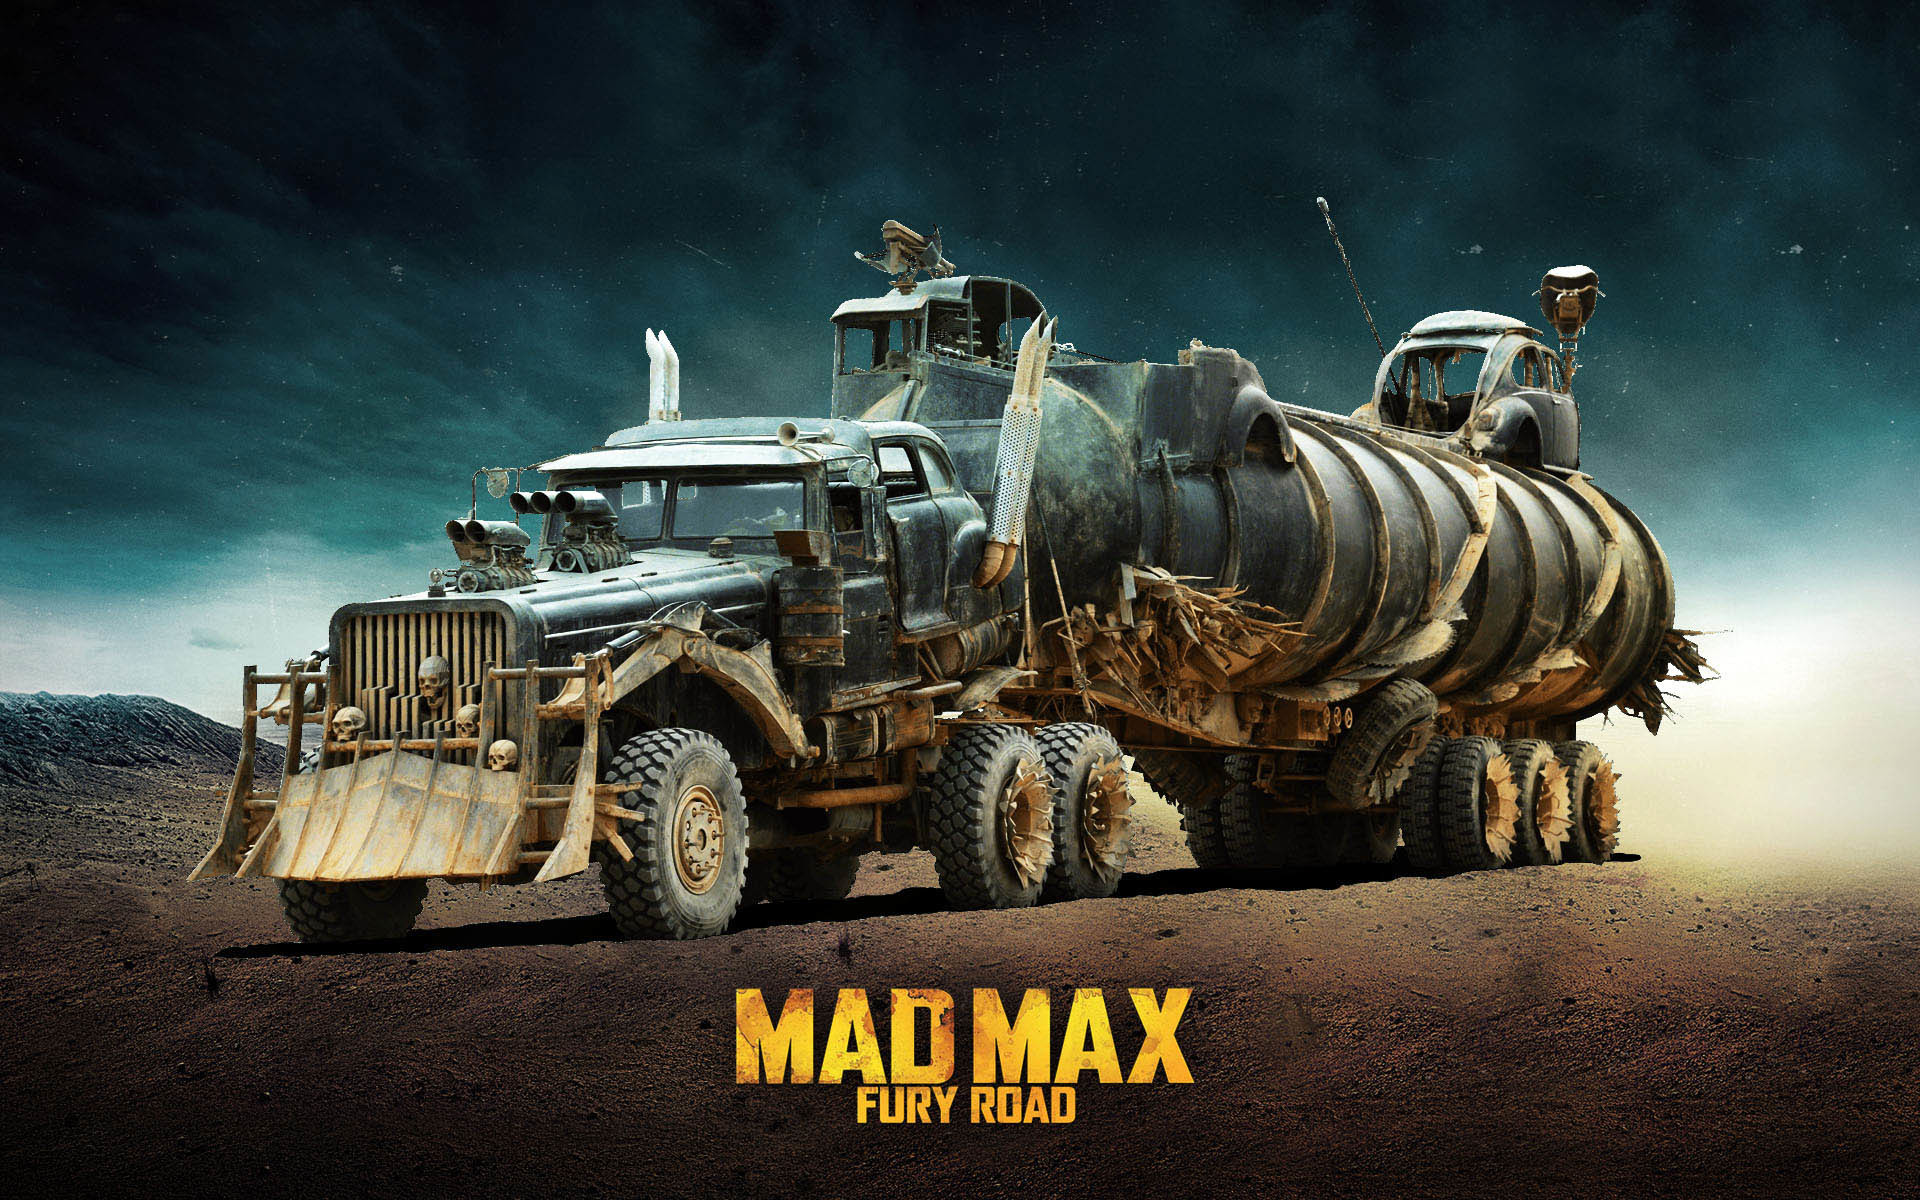 Mad Max Flame Thrower